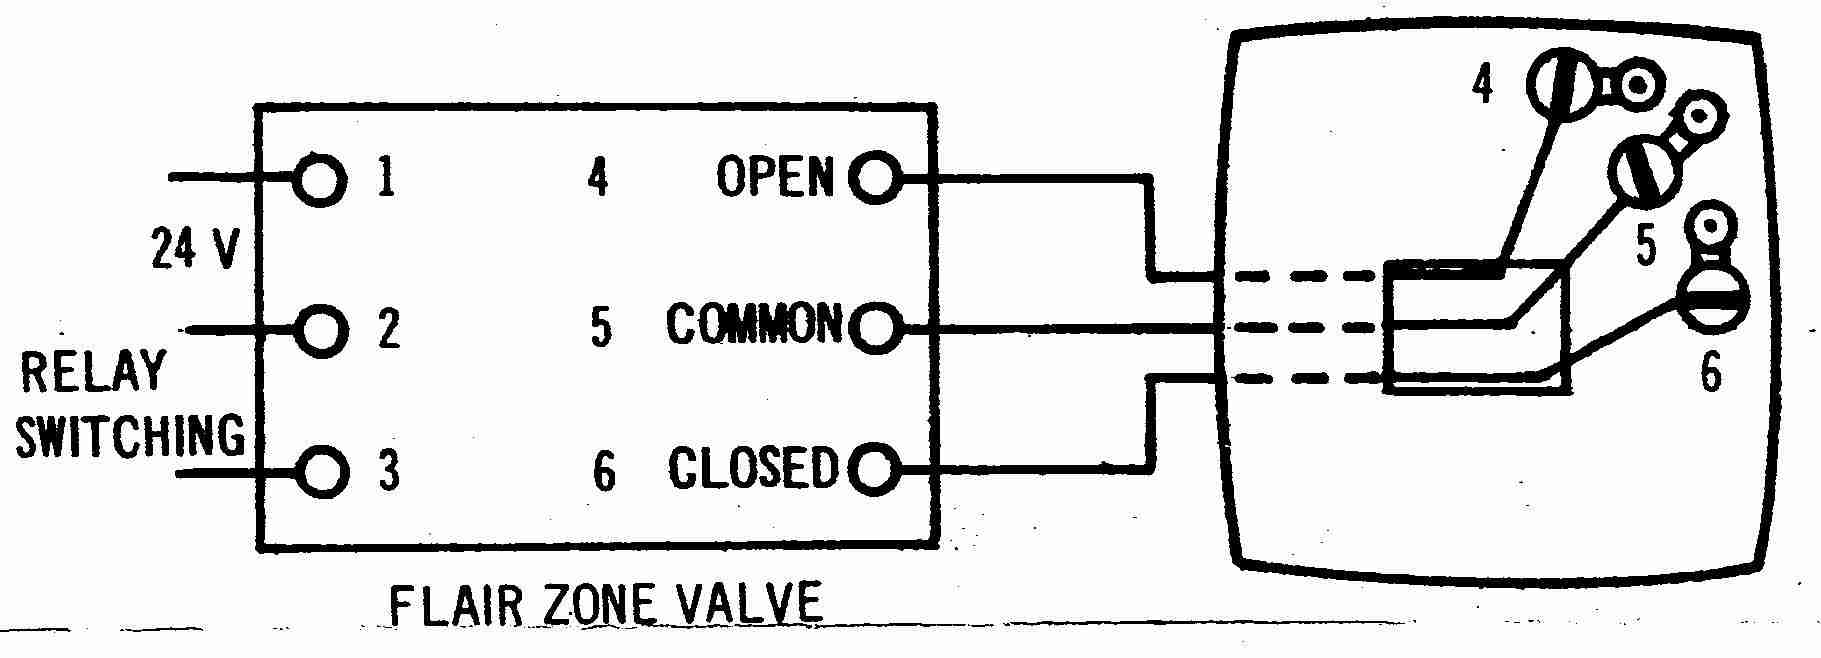 Flair3w_001_DJFc2 zone valve wiring installation & instructions guide to heating honeywell zone control wiring diagram at panicattacktreatment.co